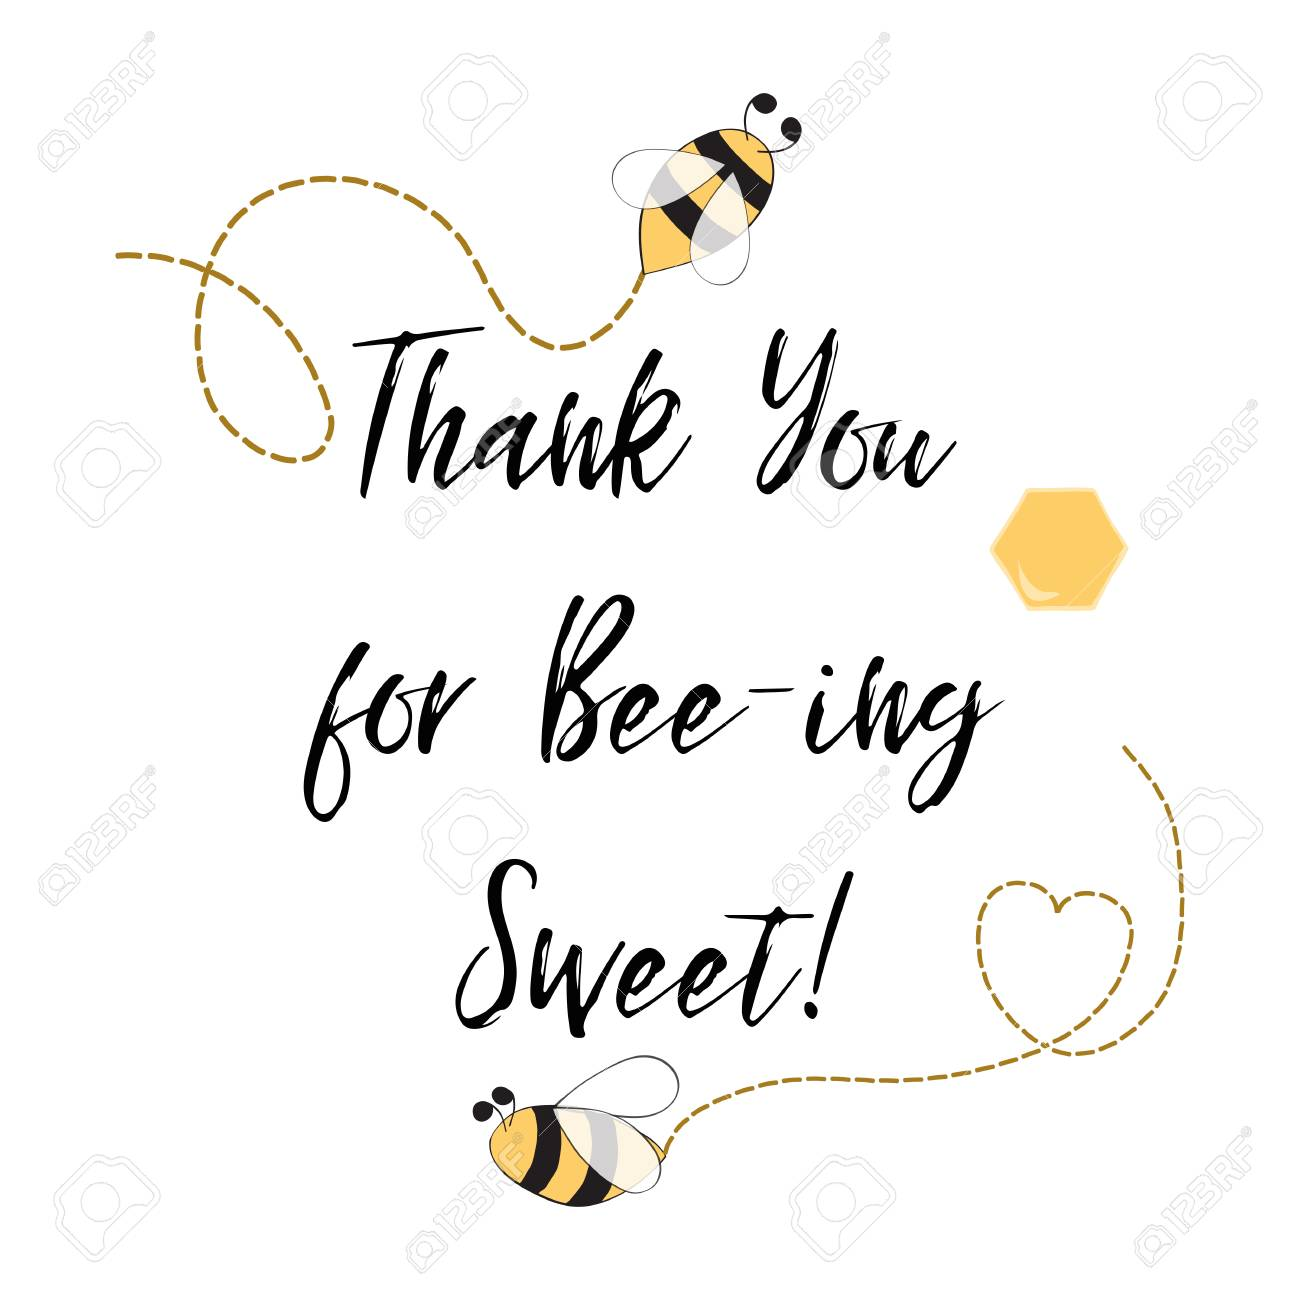 Text Thank You For Being Sweet With Bee Honey Cute Card Design